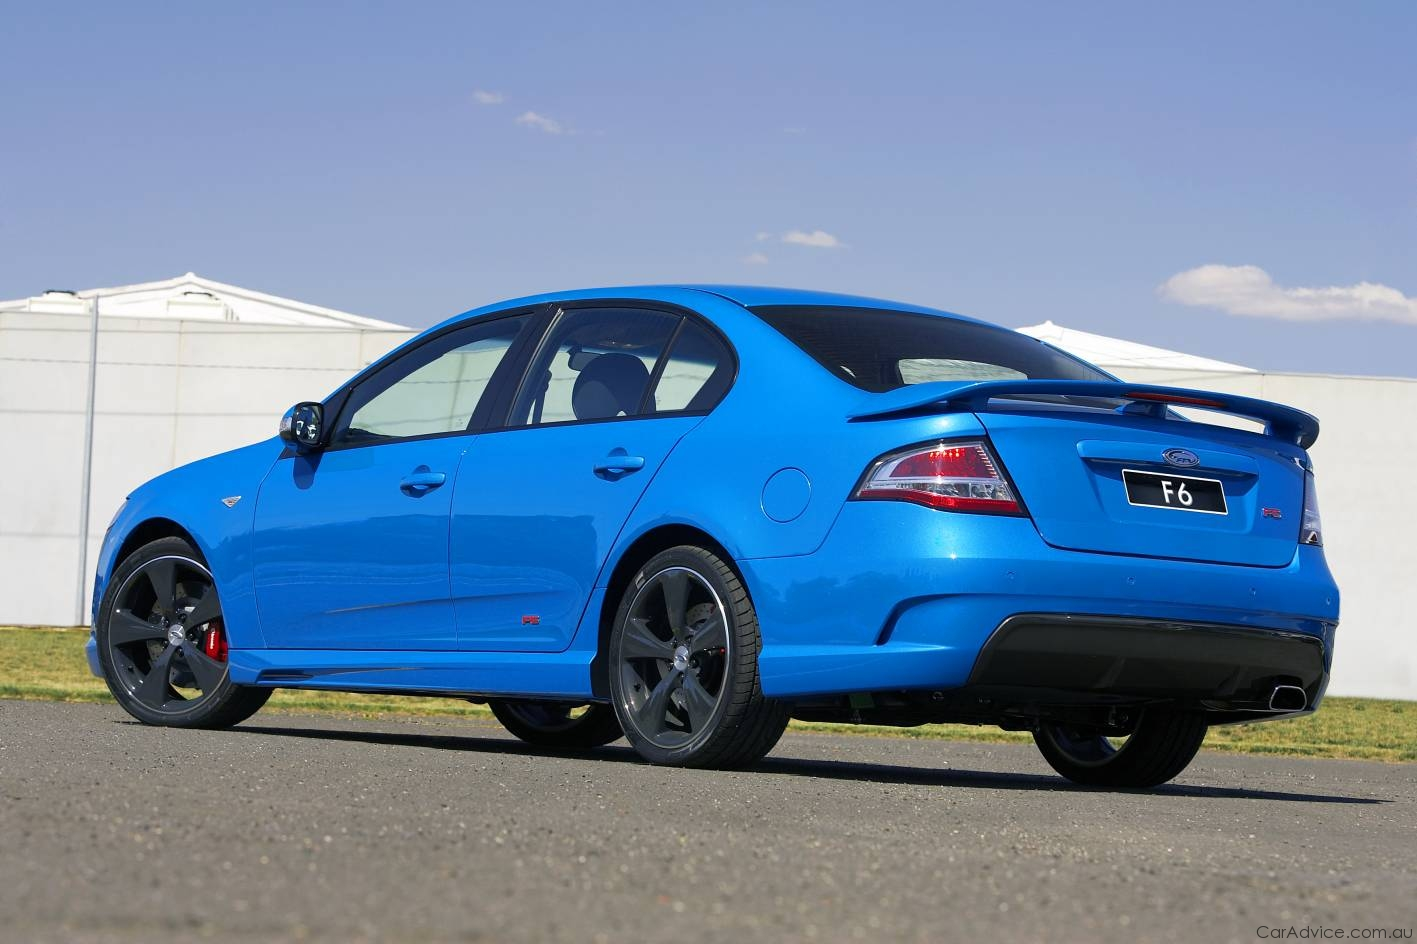 2009 Fpv F6 310 Review Caradvice